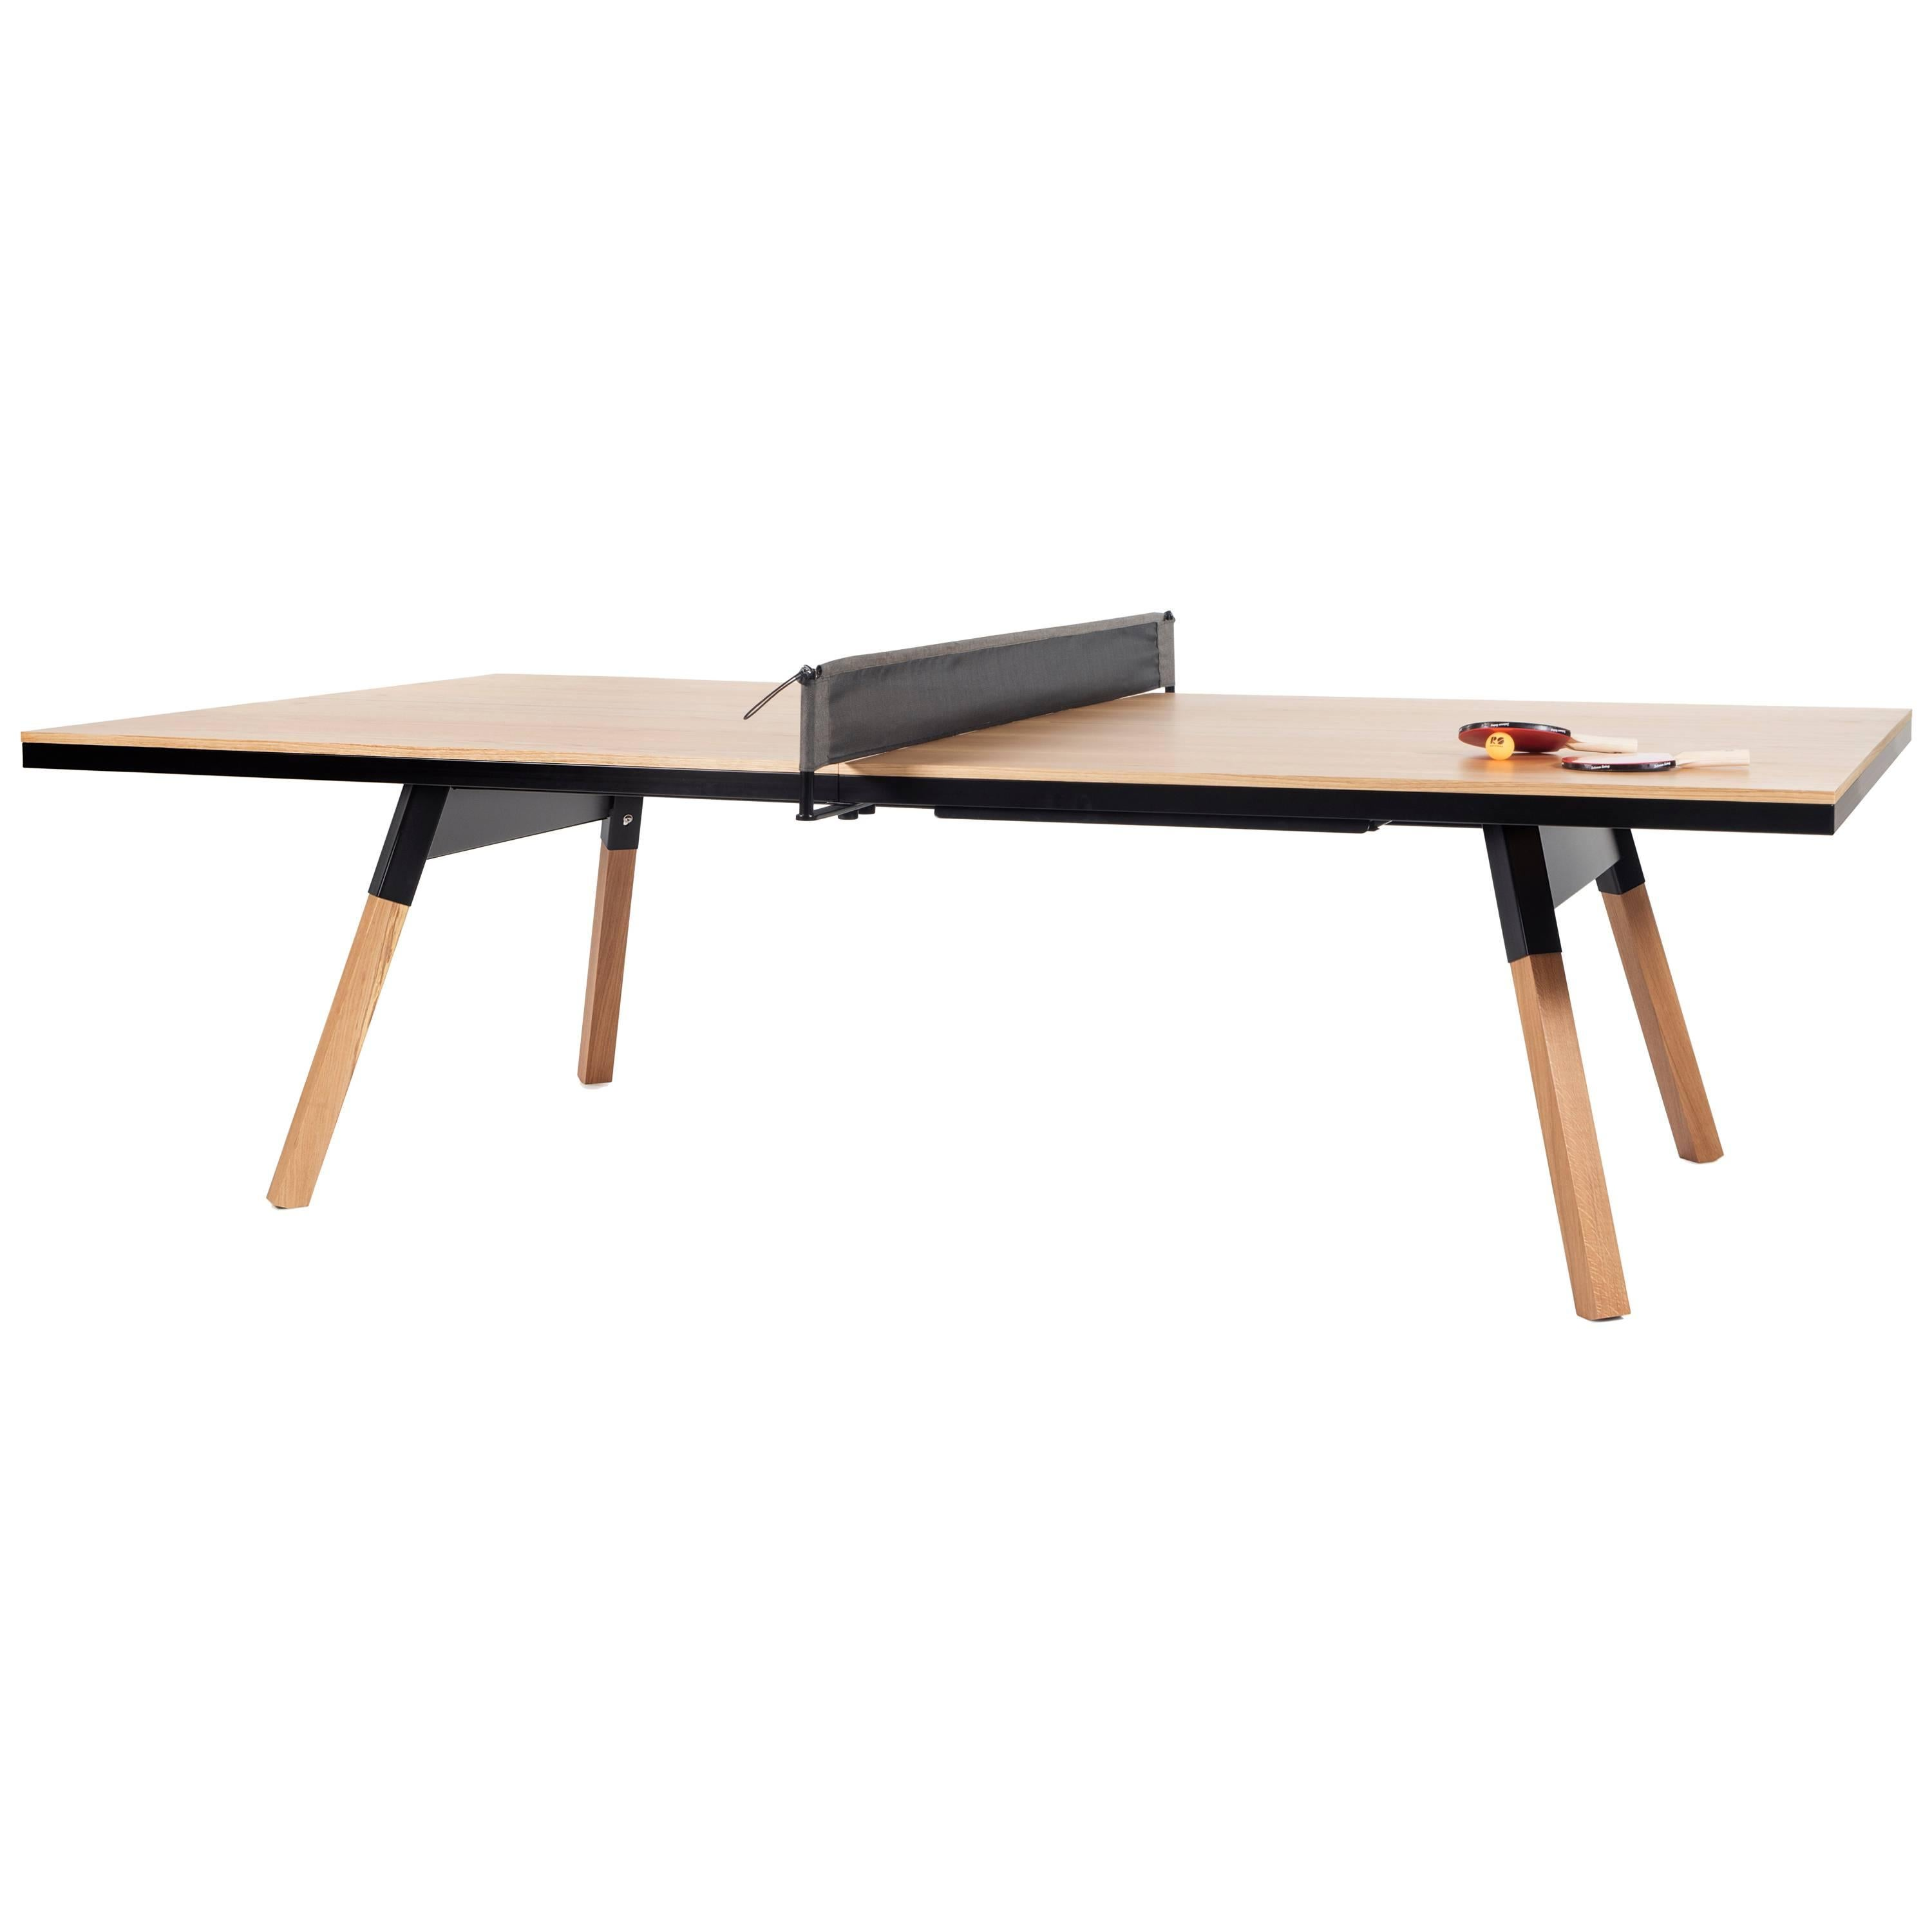 You and Me Wooden Top Standard Ping-Pong Table in Oak and Black by RS Barcelona